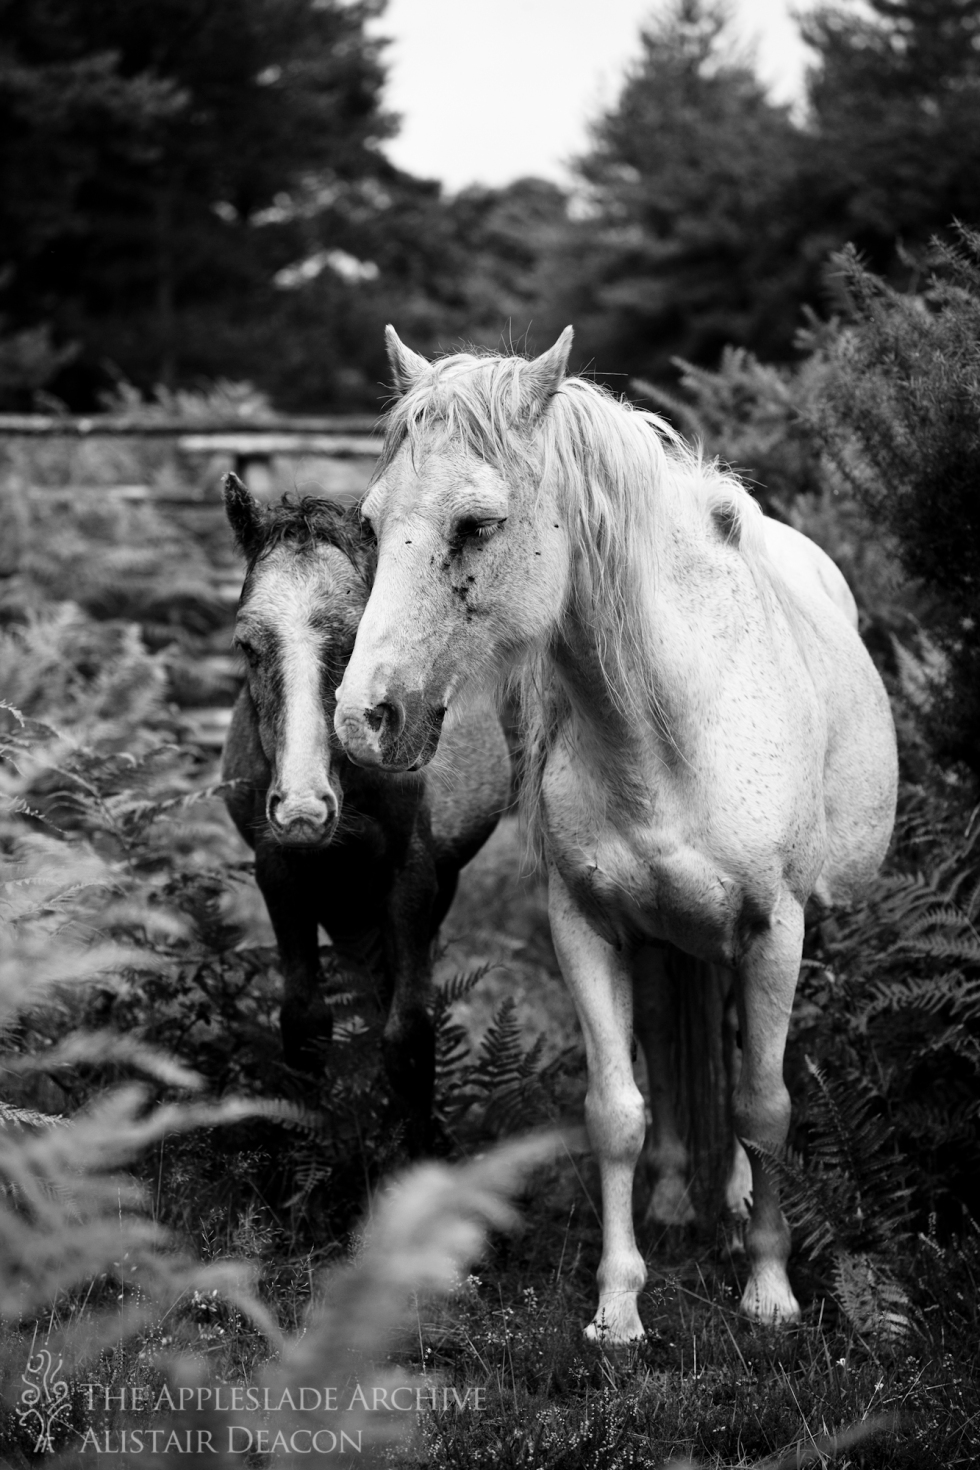 A pony and her foal at Slufters Drift, Slufters Wood, New Forest, Hampshire, 13th Sept 2013